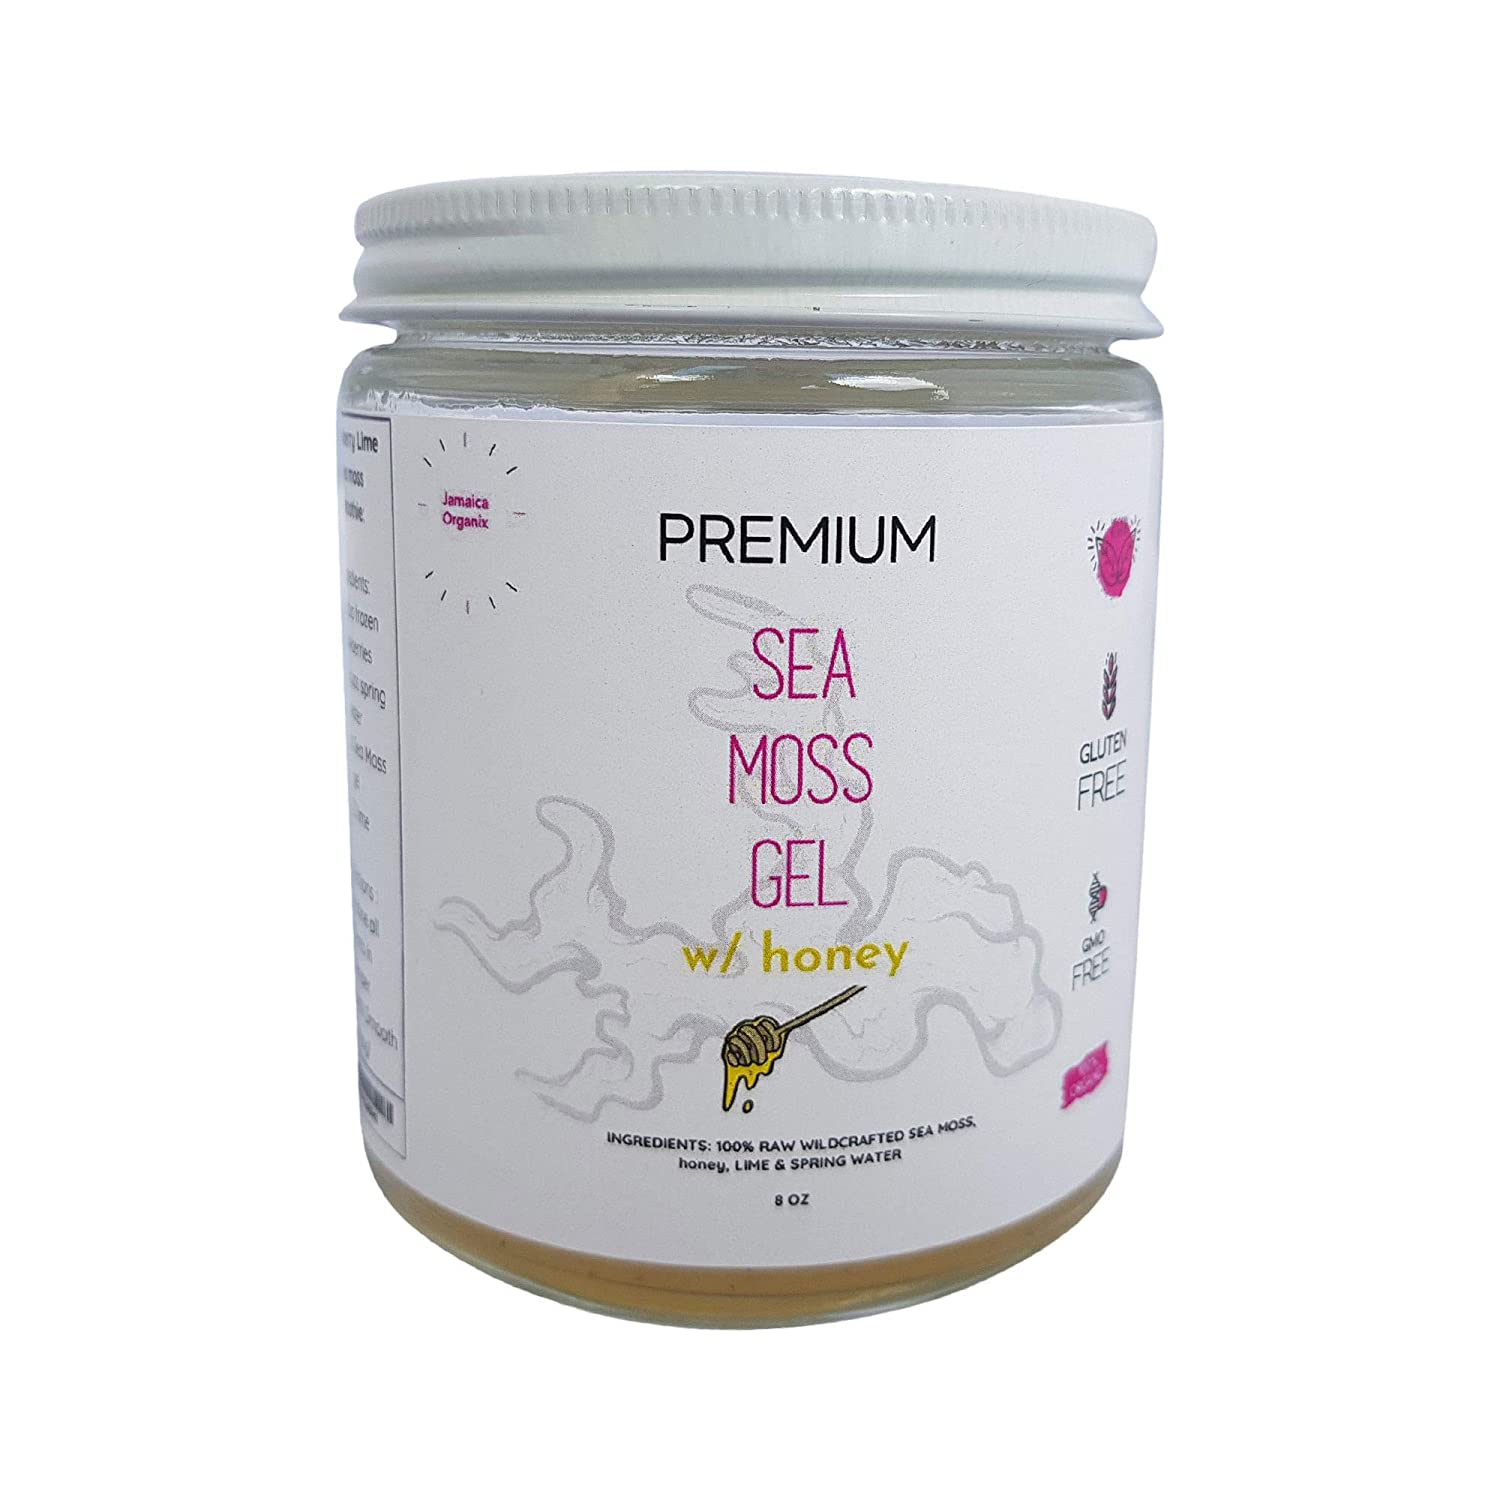 Wildcrafted Sea Moss Gel with Raw Honey, Organic Irish Seamoss with 92 Minerals and Vitamins, Cell Food for Energy, Natural Weight Loss, Digestion, Radiant Skin and More, 8oz